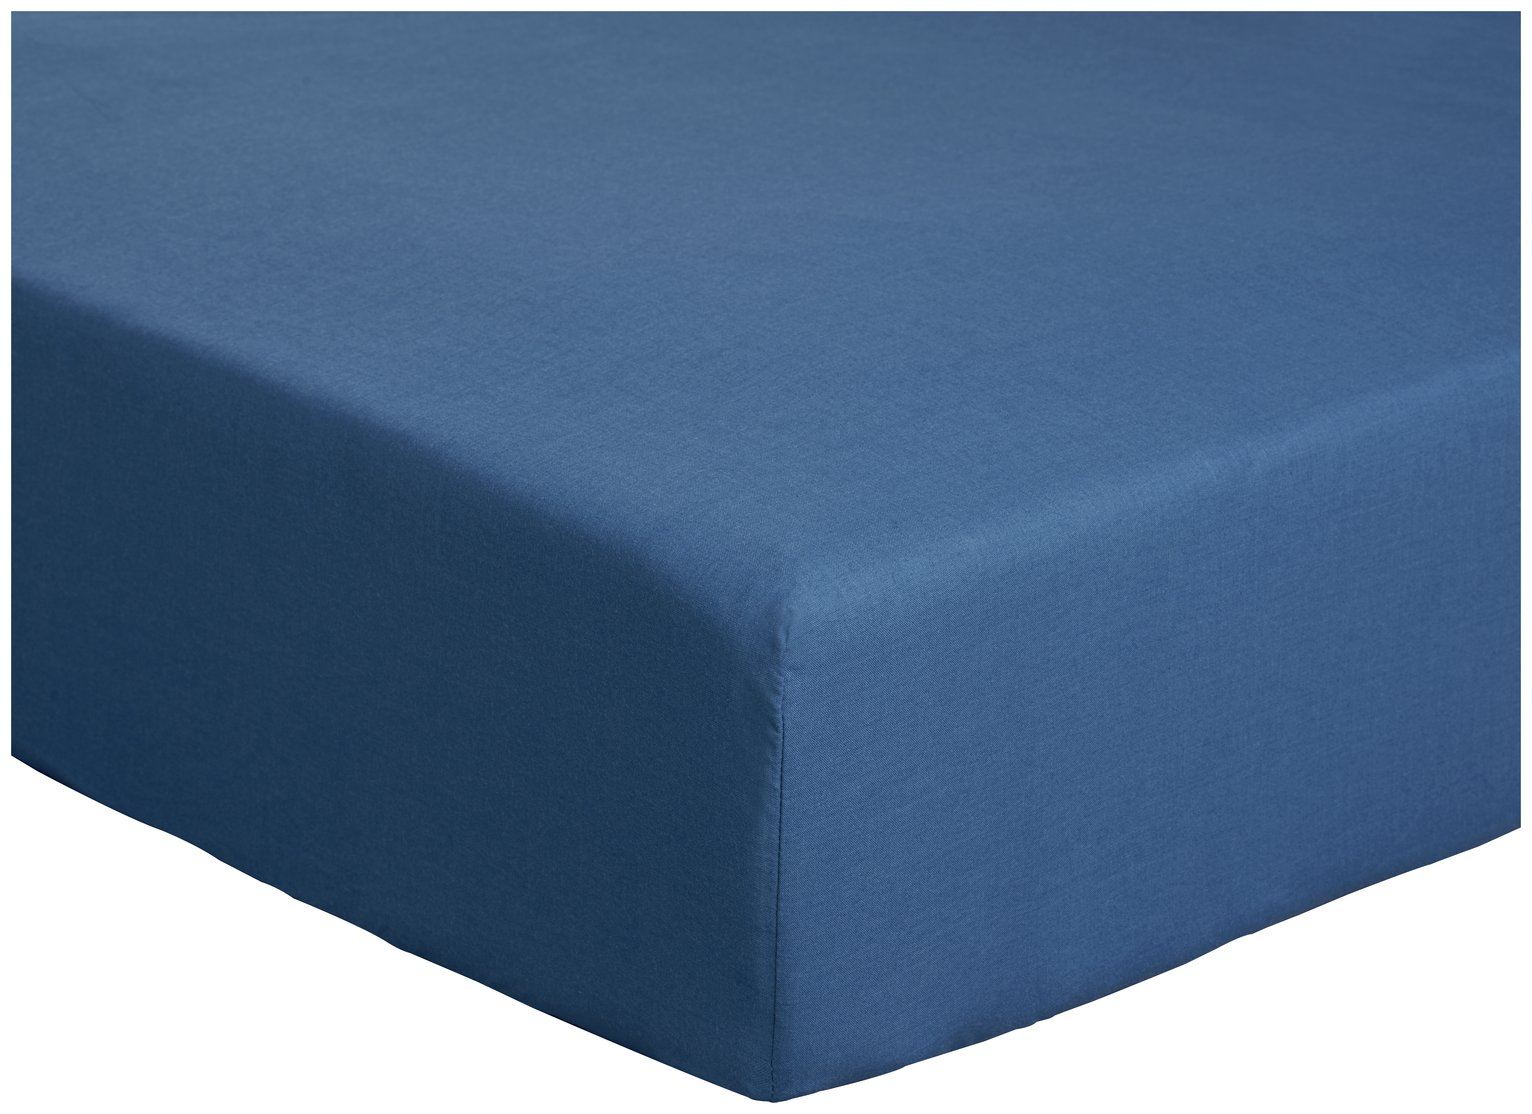 Argos Home Ink Blue Fitted Sheet review